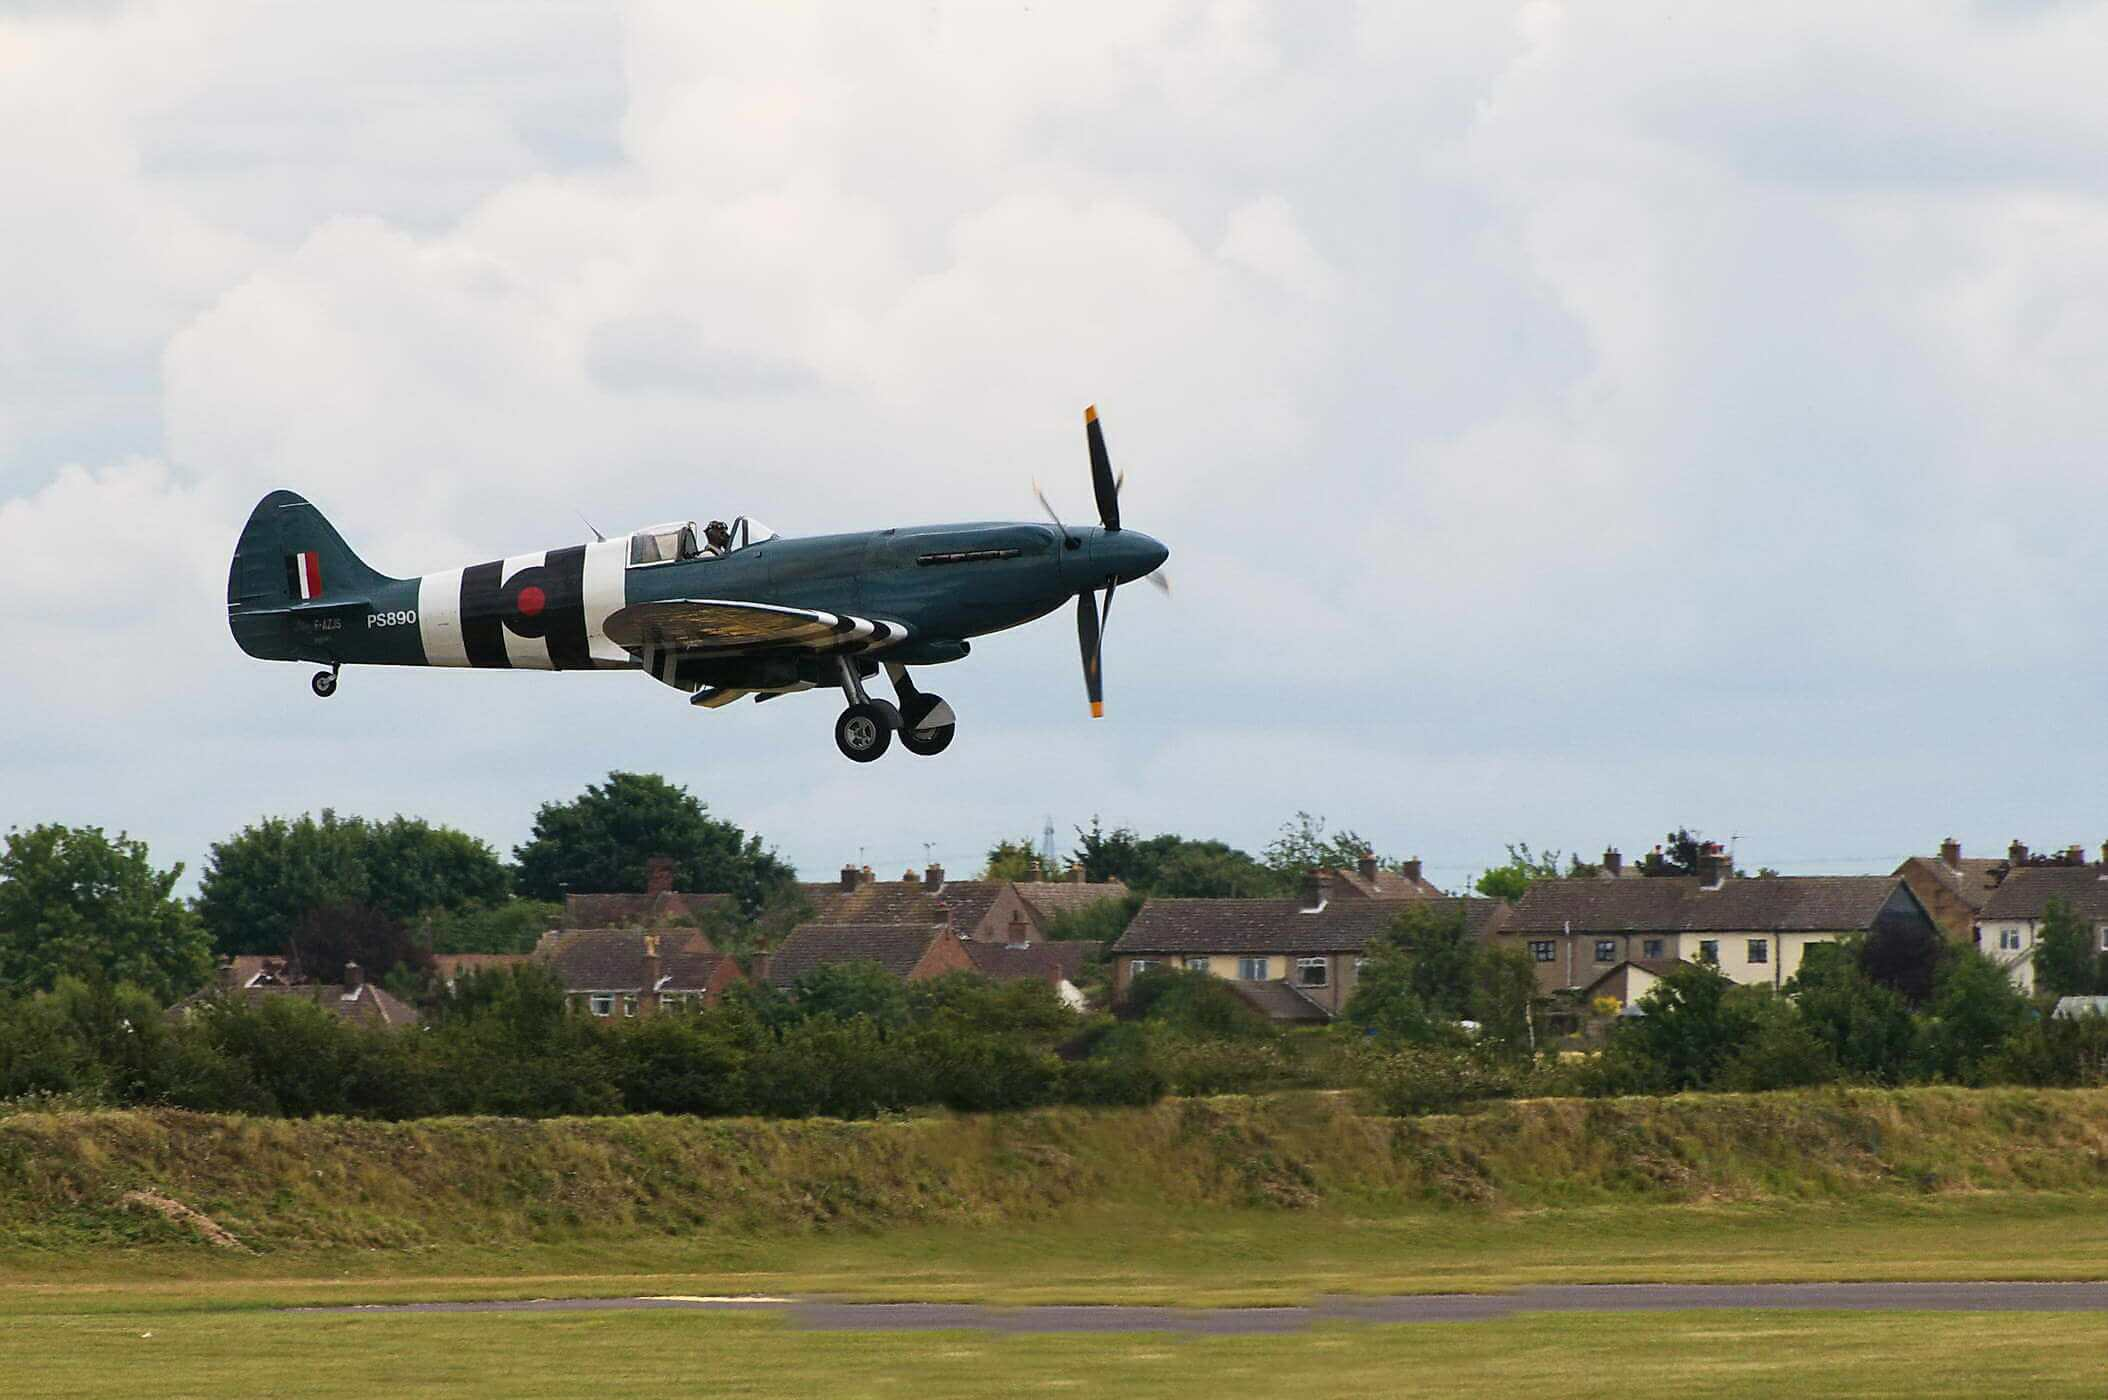 Supermarine Spitfire PR XIX PS890 - with contra-rotating propellers_2